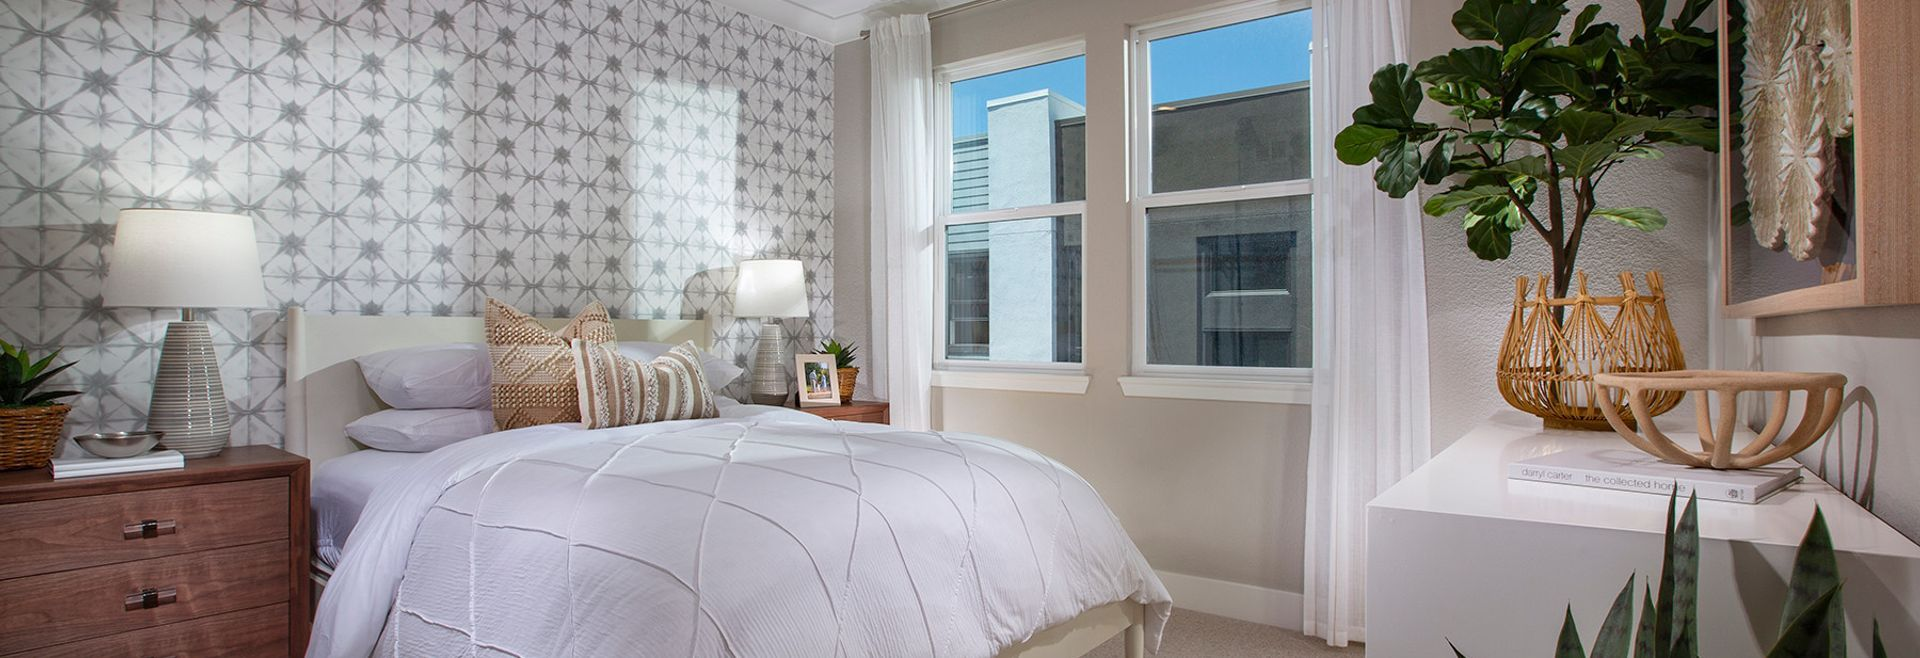 Bedroom featured in the Plan 2 By Shea Homes in Oakland-Alameda, CA